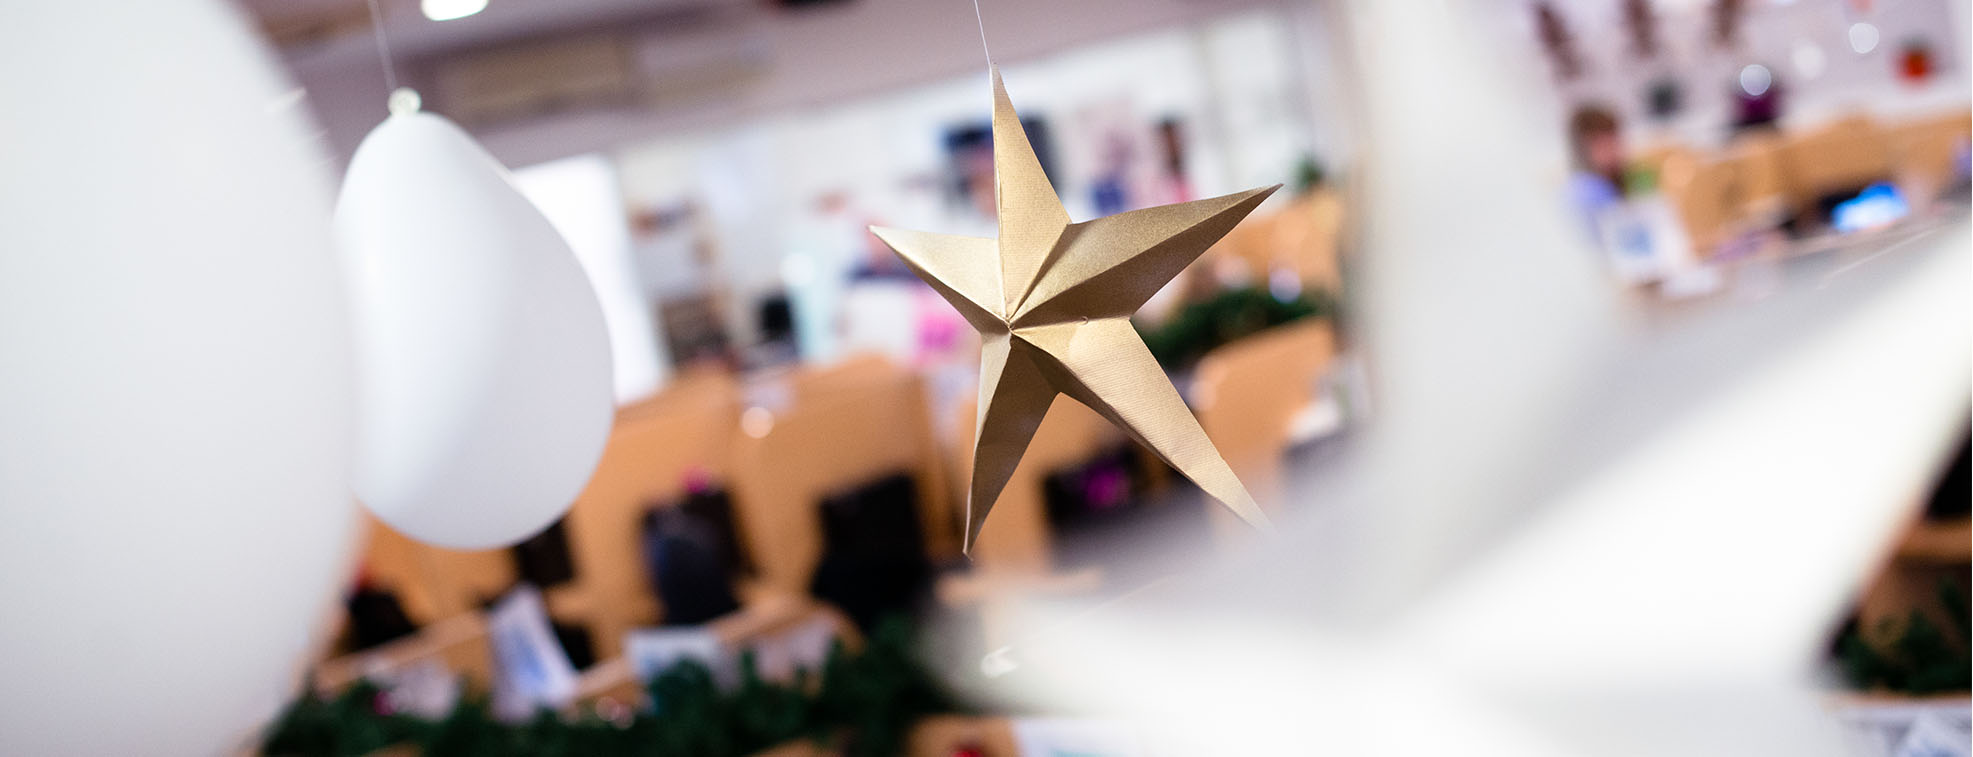 New Year star-form office decoration